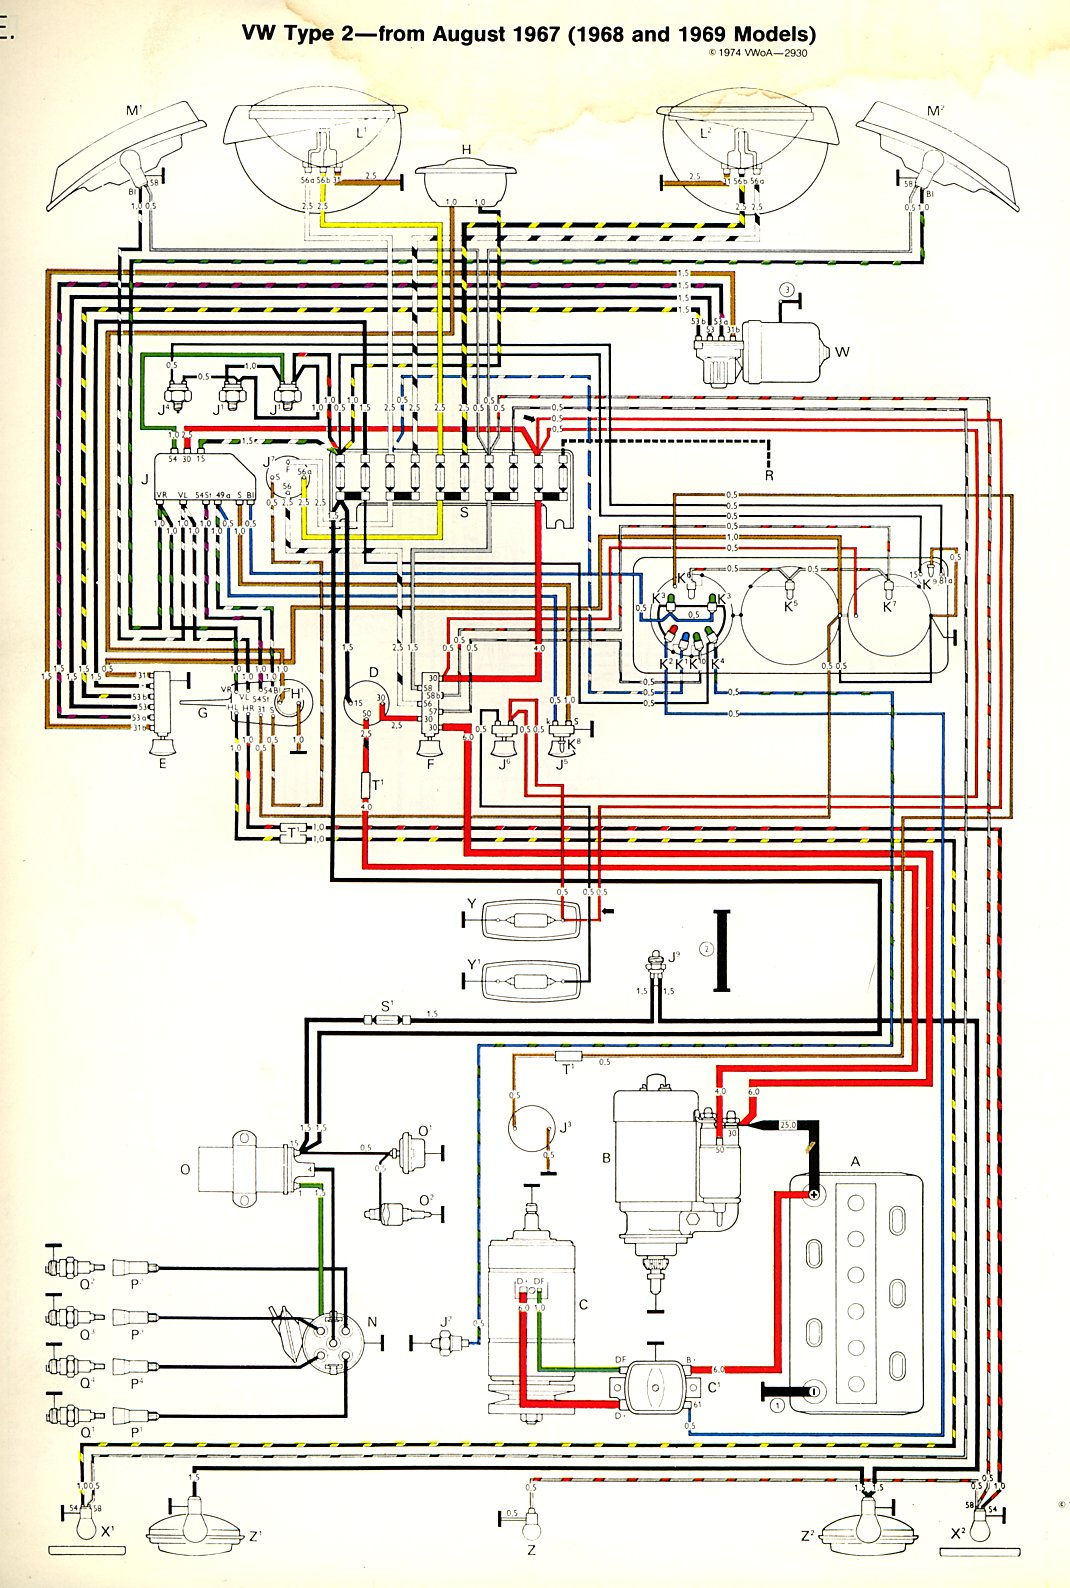 1978 vw bus wiring diagram thesamba.com :: type 2 wiring diagrams #10